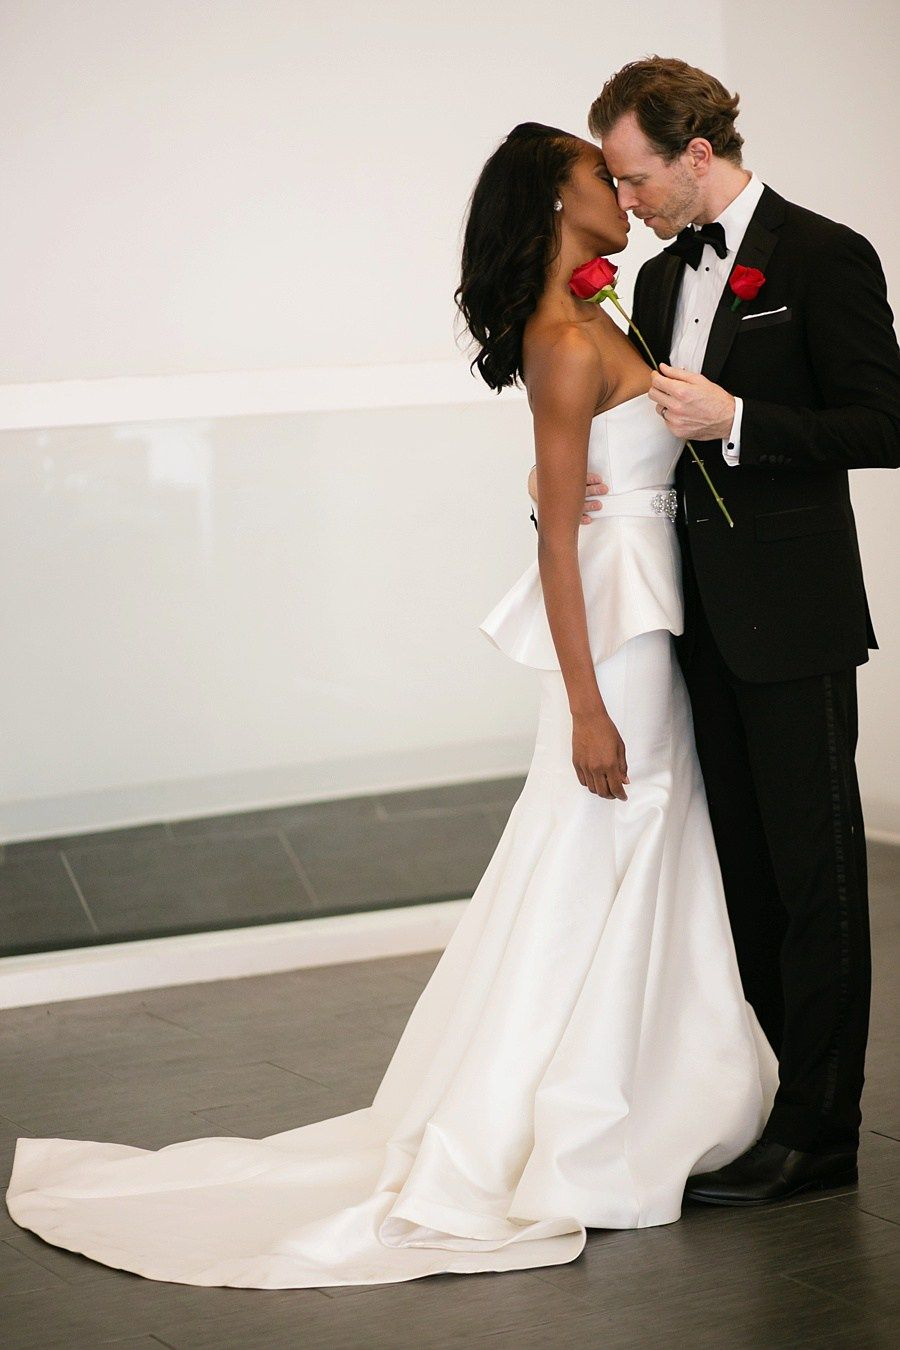 A SCANDAL Wedding: Olivia Pope marries Fitzgerald Grant